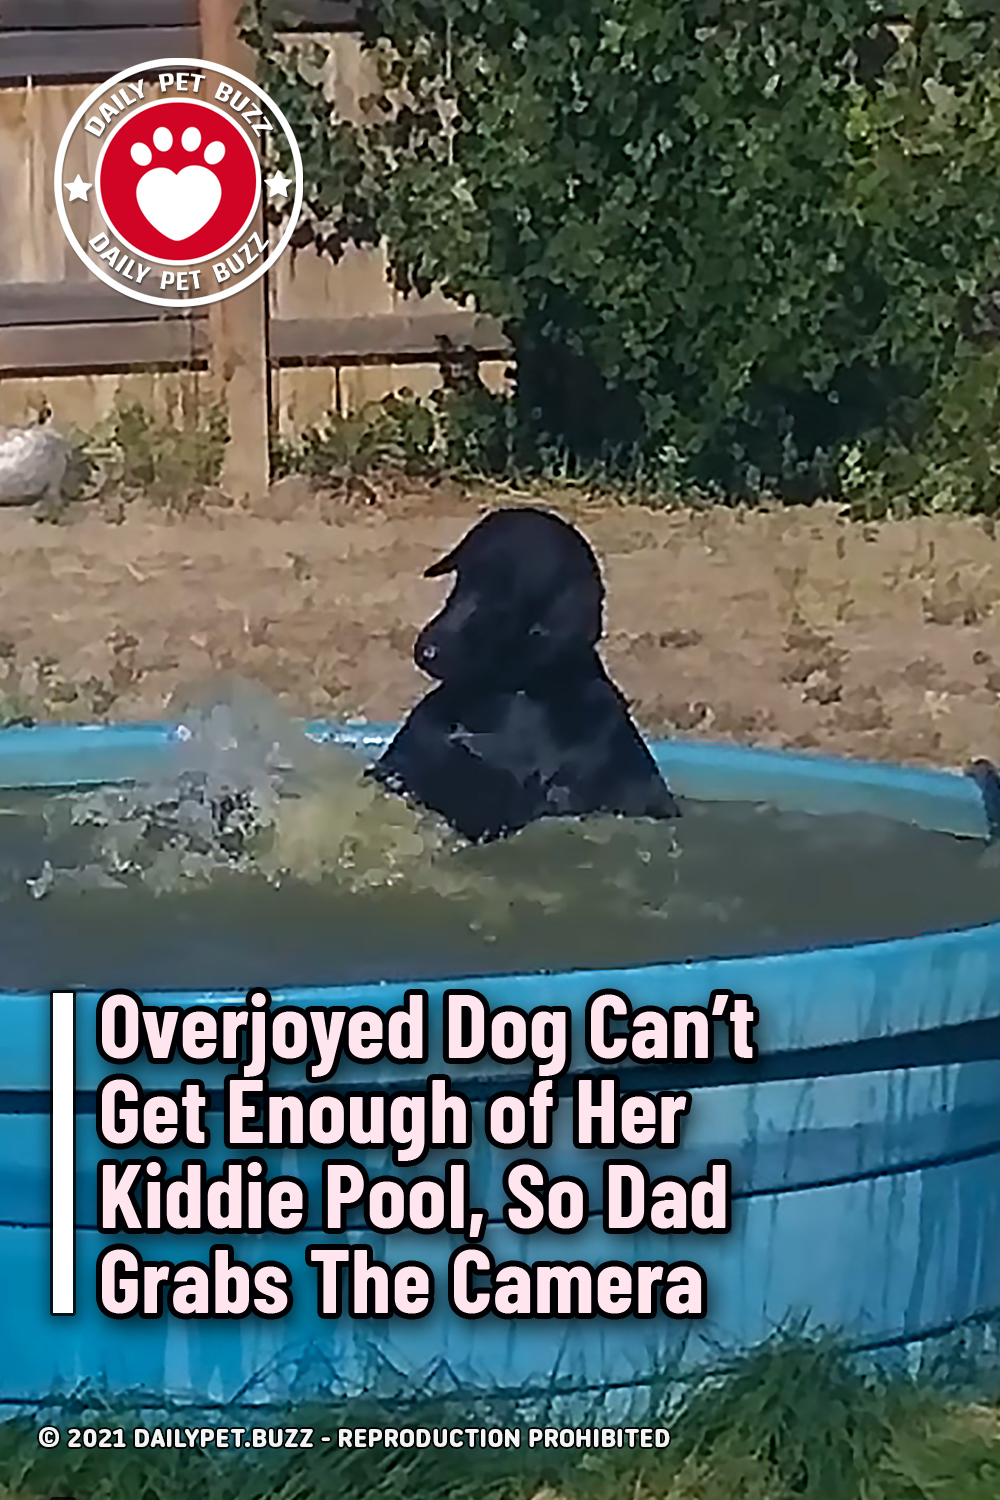 Overjoyed Dog Can\'t Get Enough of Her Kiddie Pool, So Dad Grabs The Camera